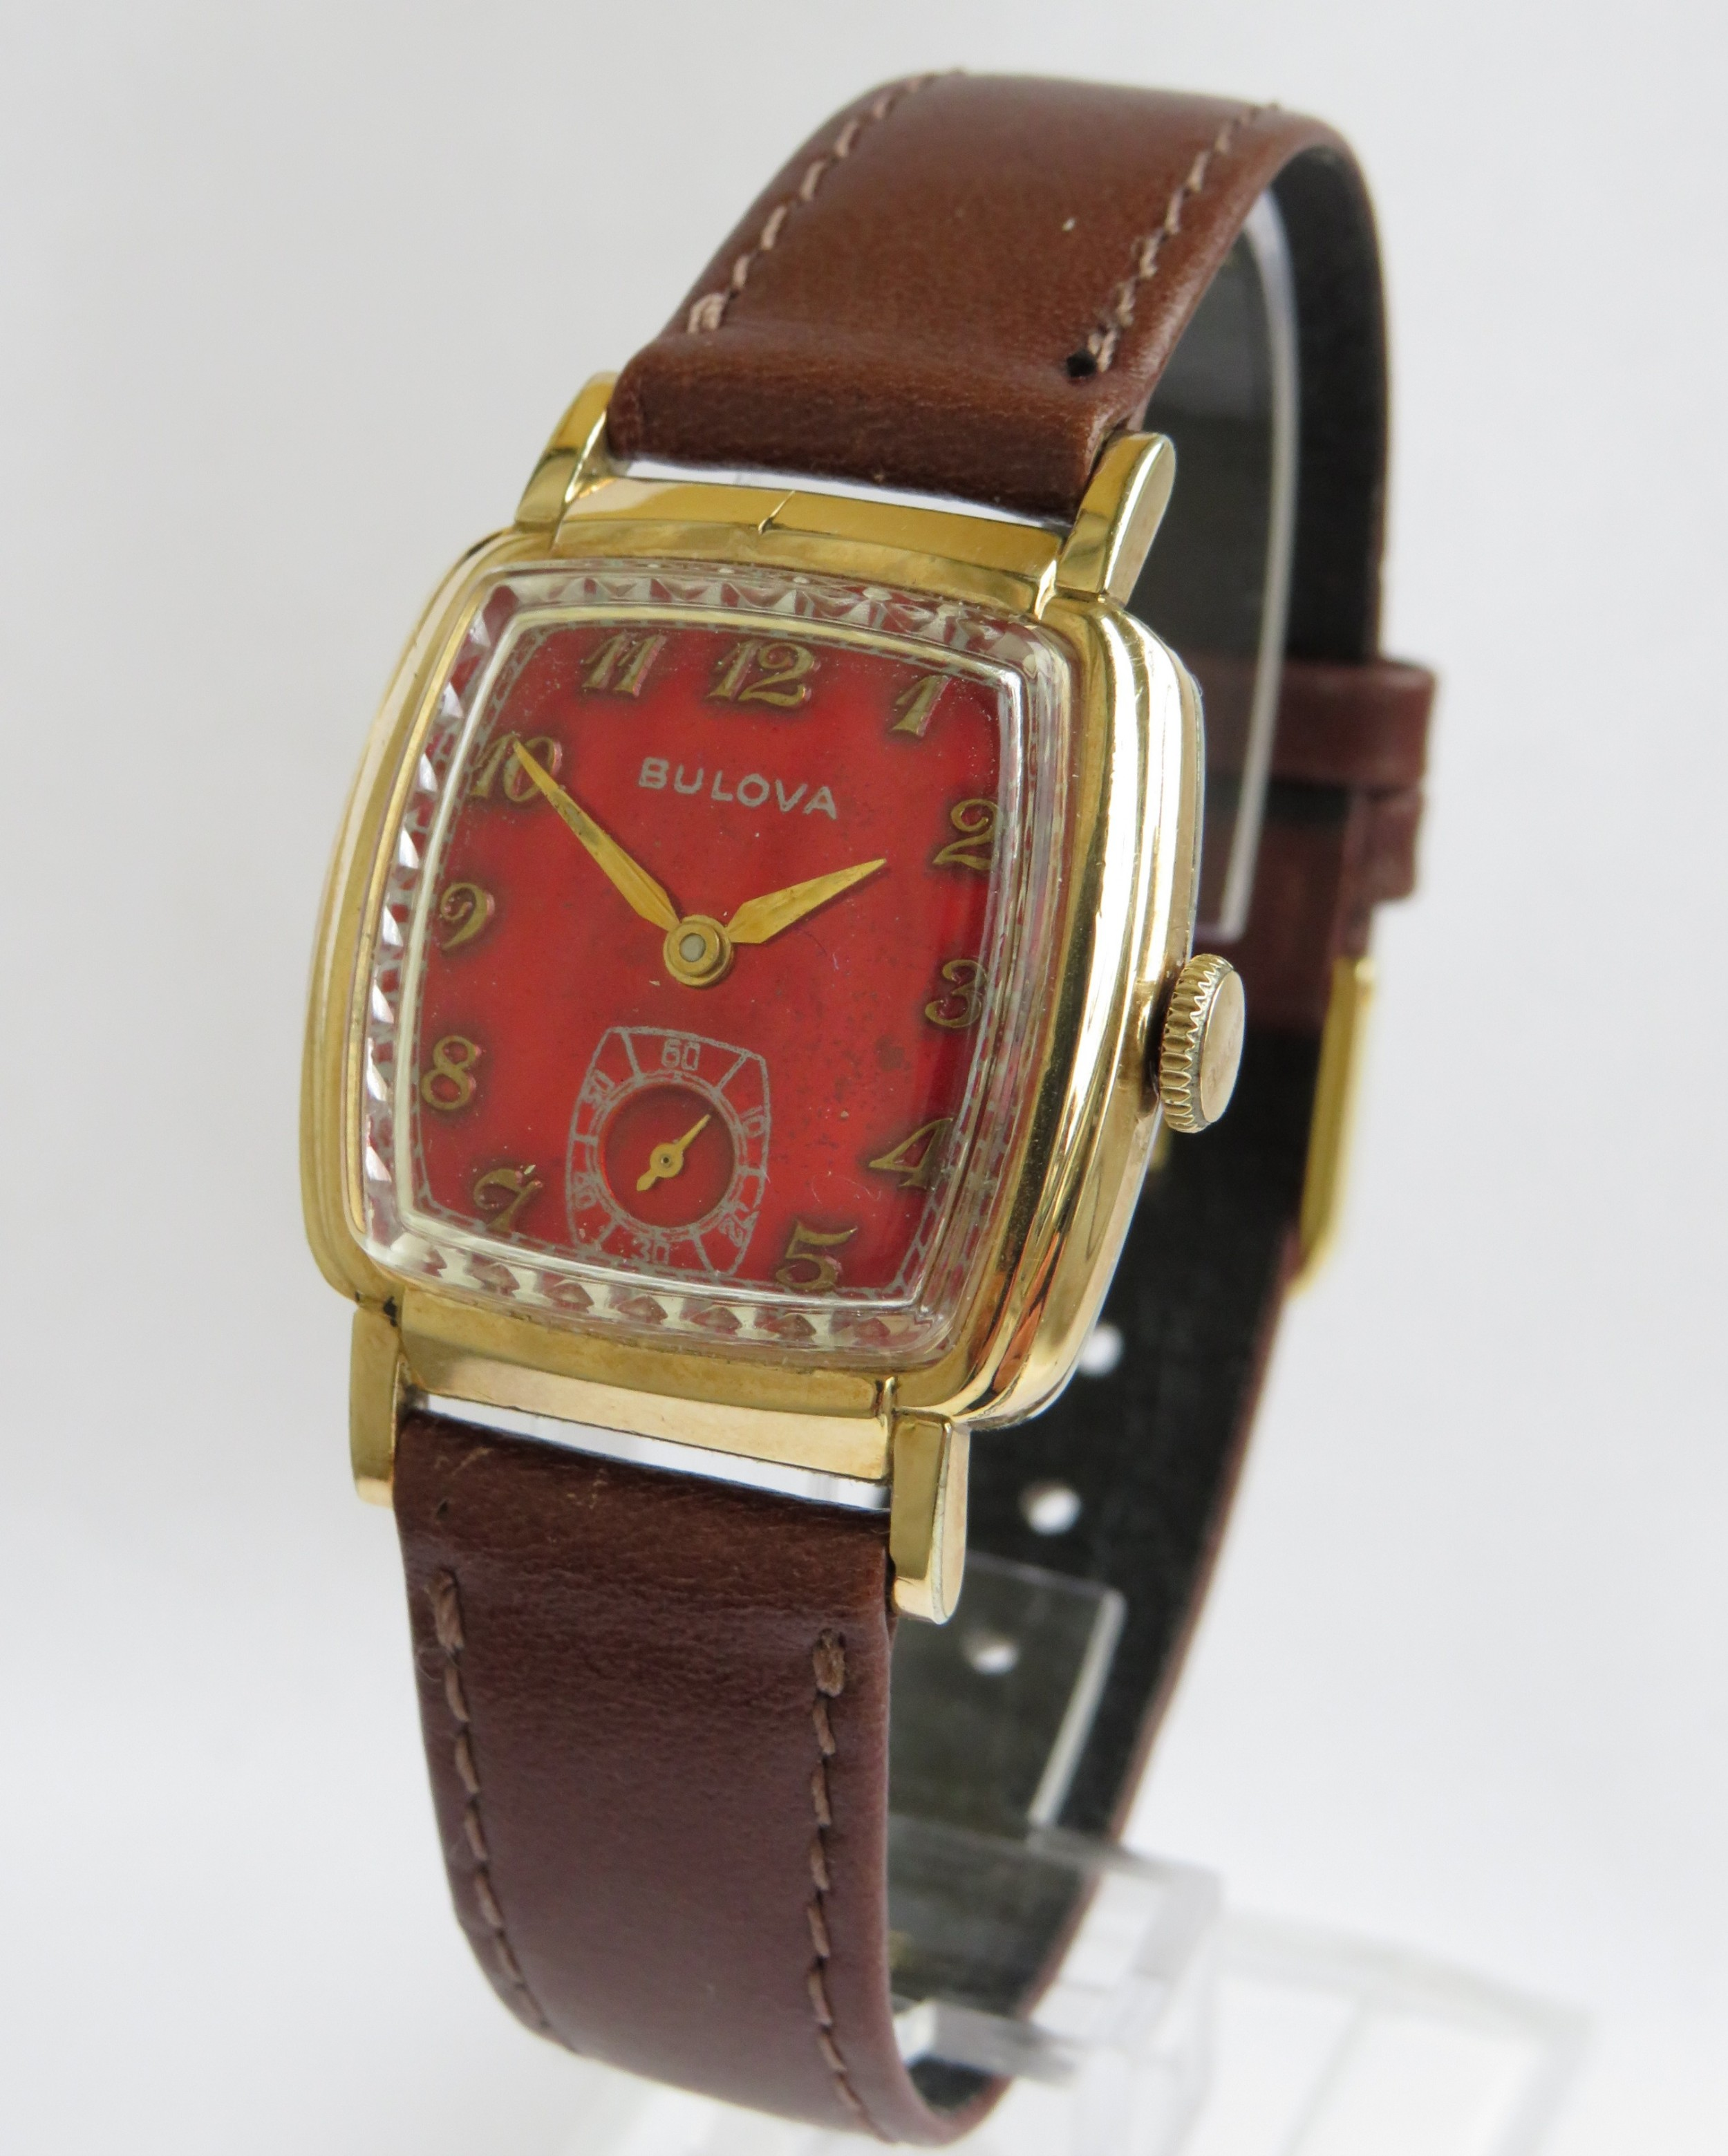 gents 1955 bulova wrist watch